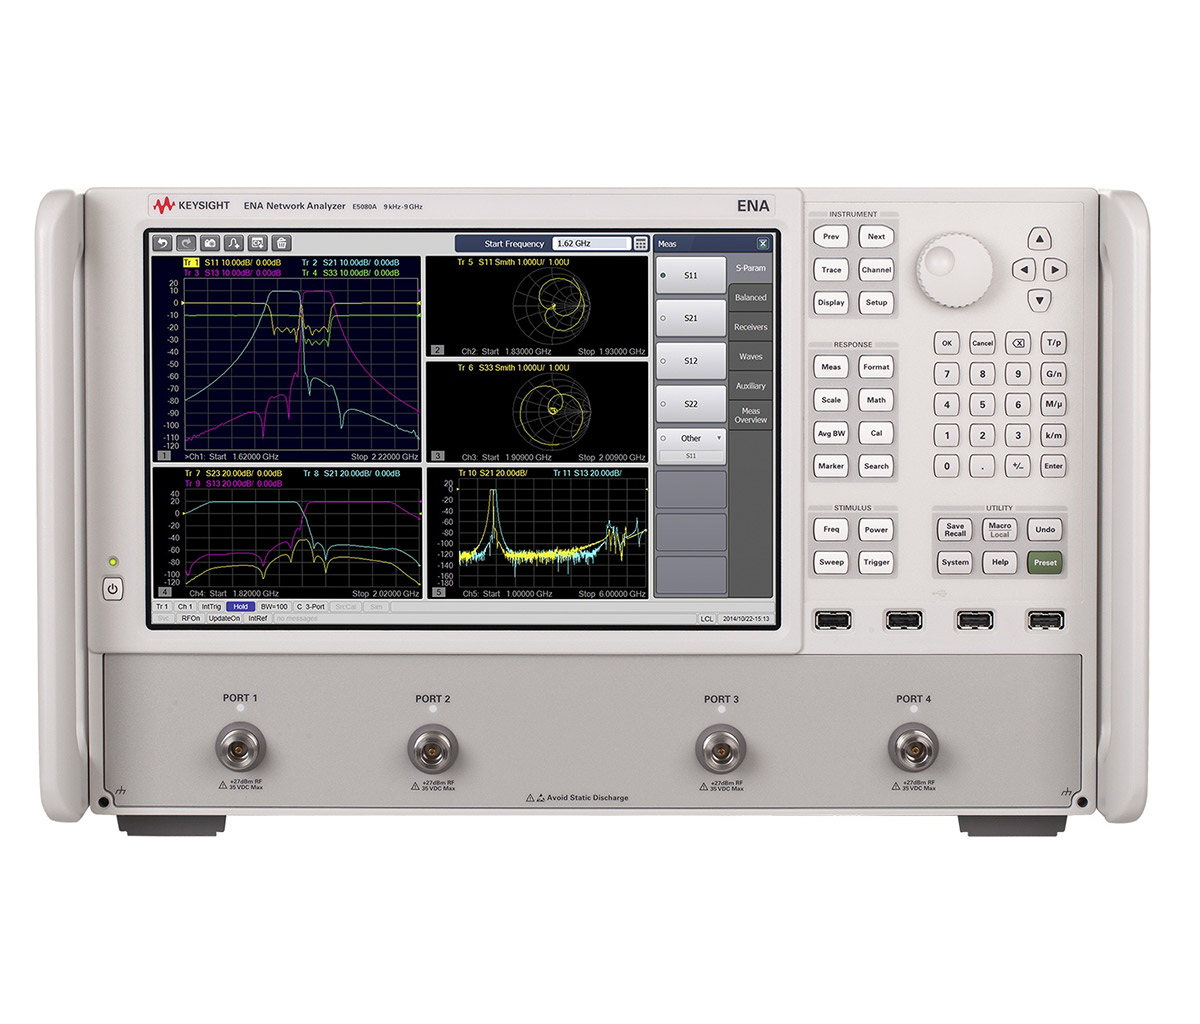 Keysight (Formerly Agilent) E5080A-495 for Lease, Rent or Buy | TRS-RenTelco